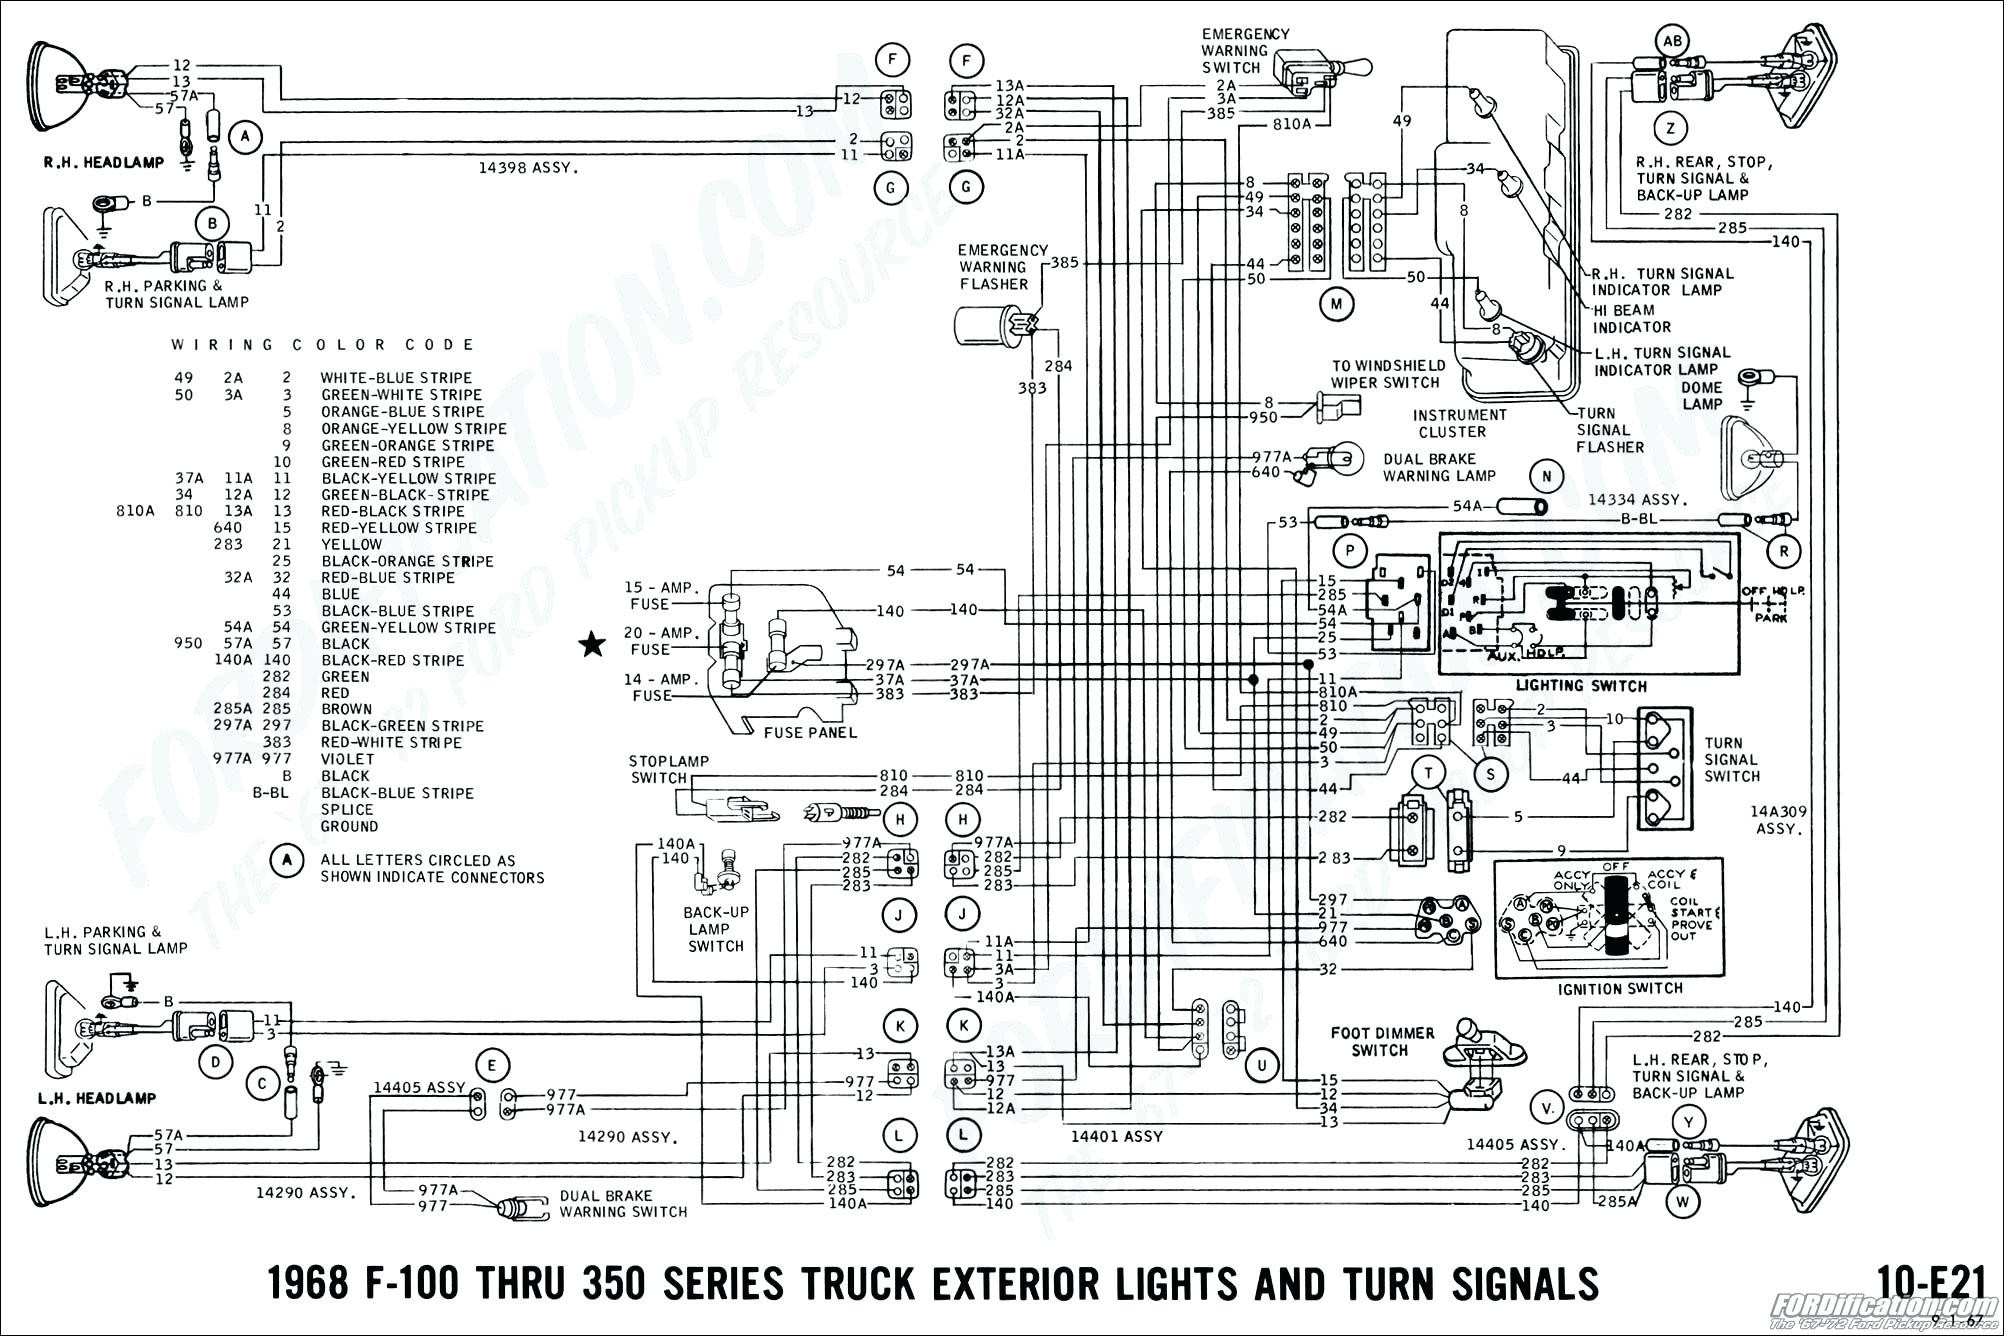 1973 Chevy Truck Wiring Diagram 1973 ford F100 Wiring